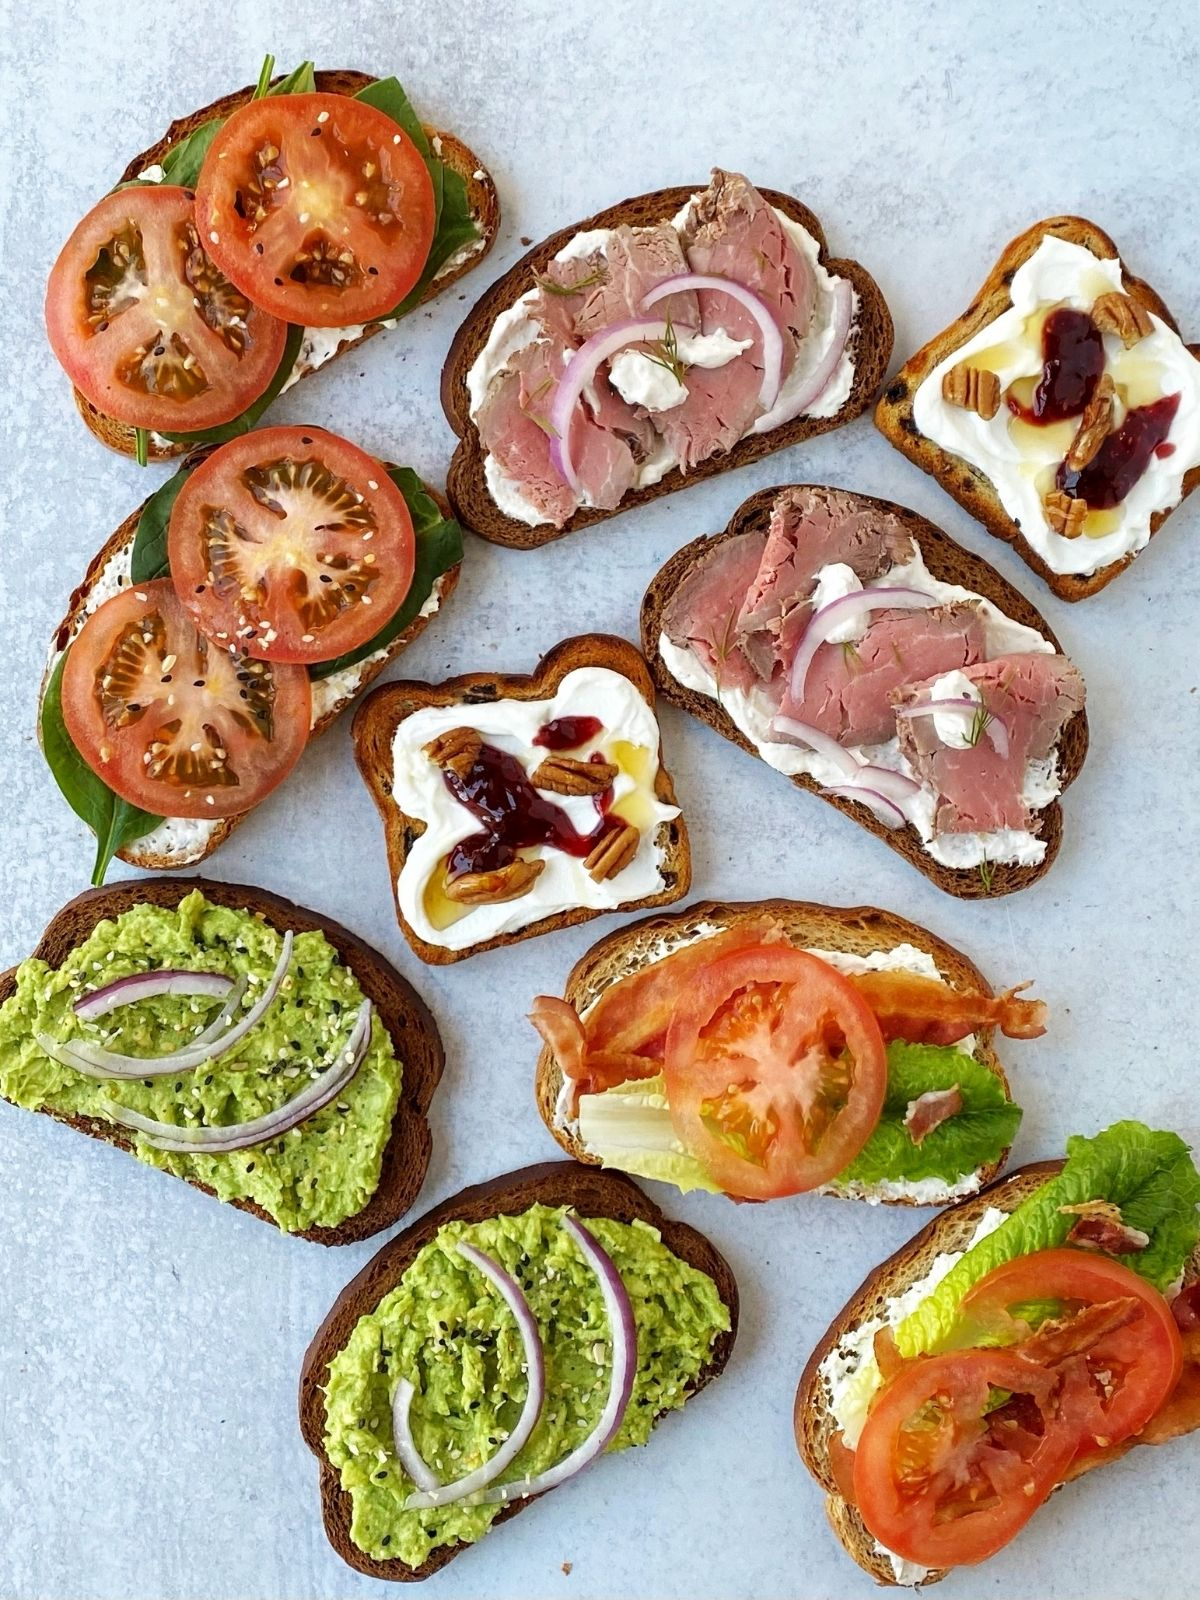 five different types of toast with various toppings